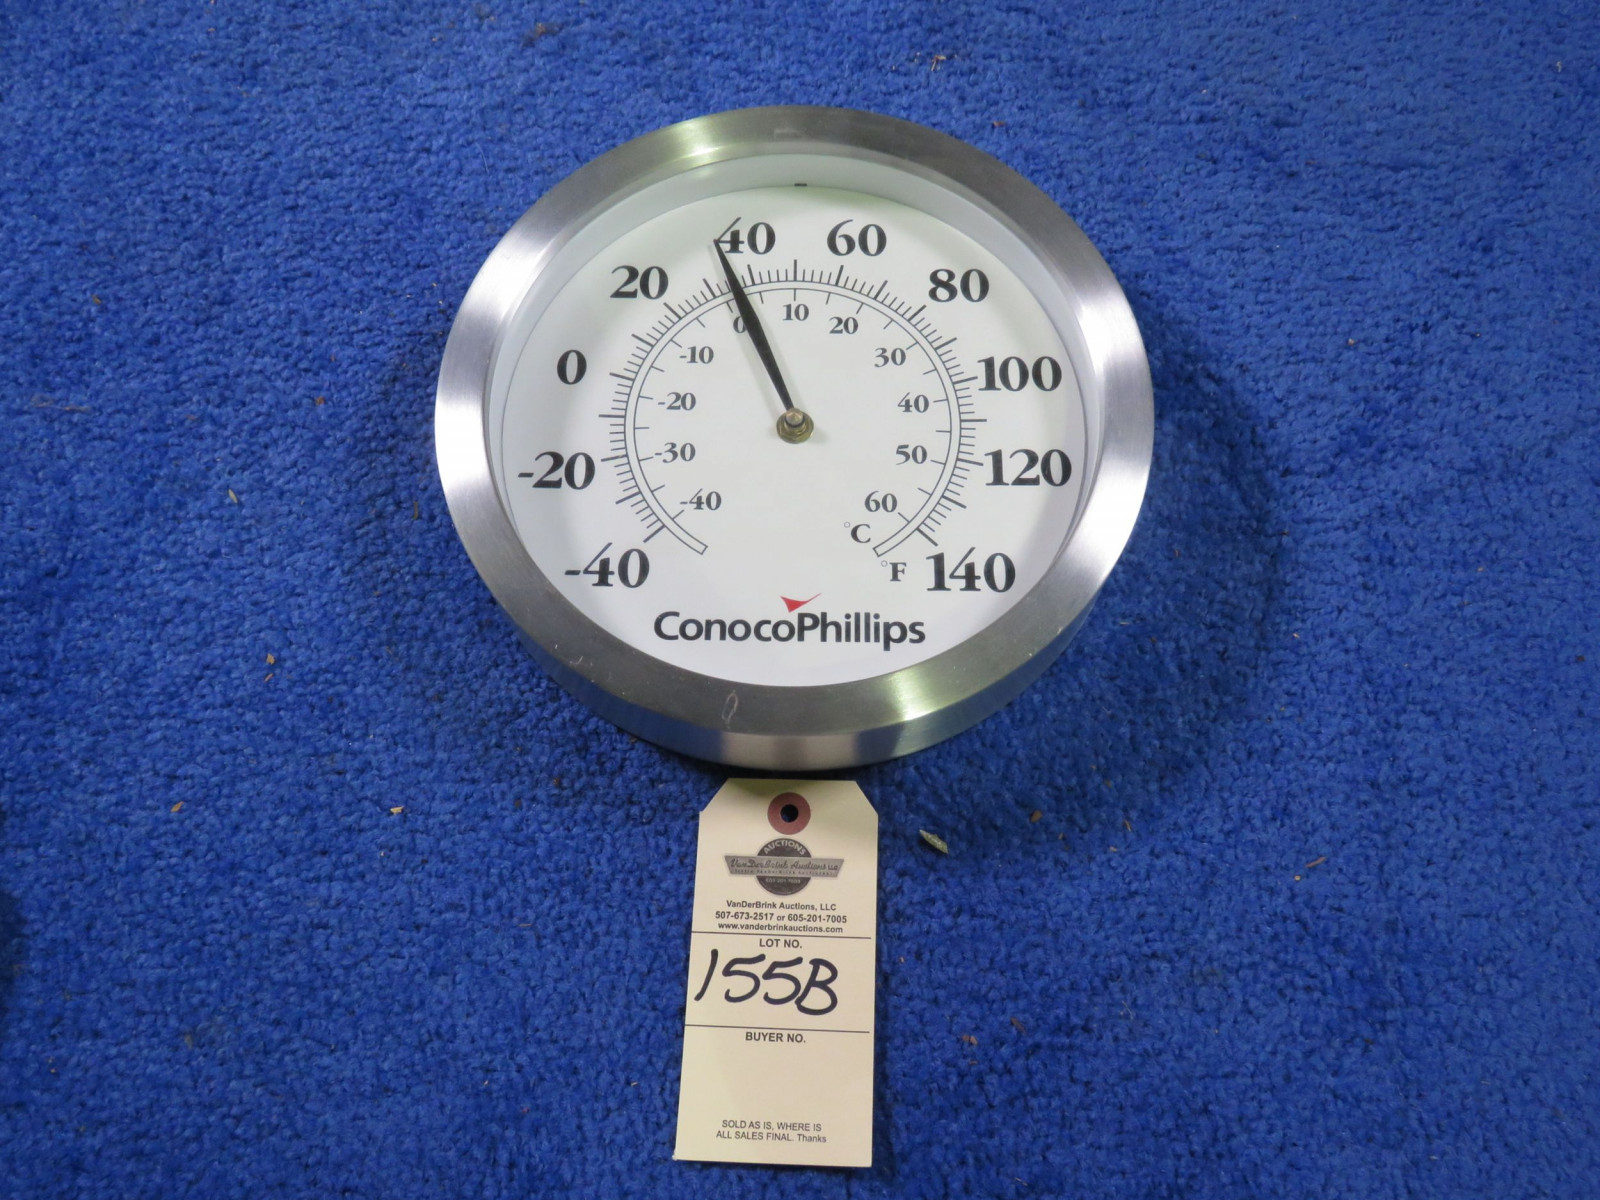 Conoco Phillips Thermometer - Image 1